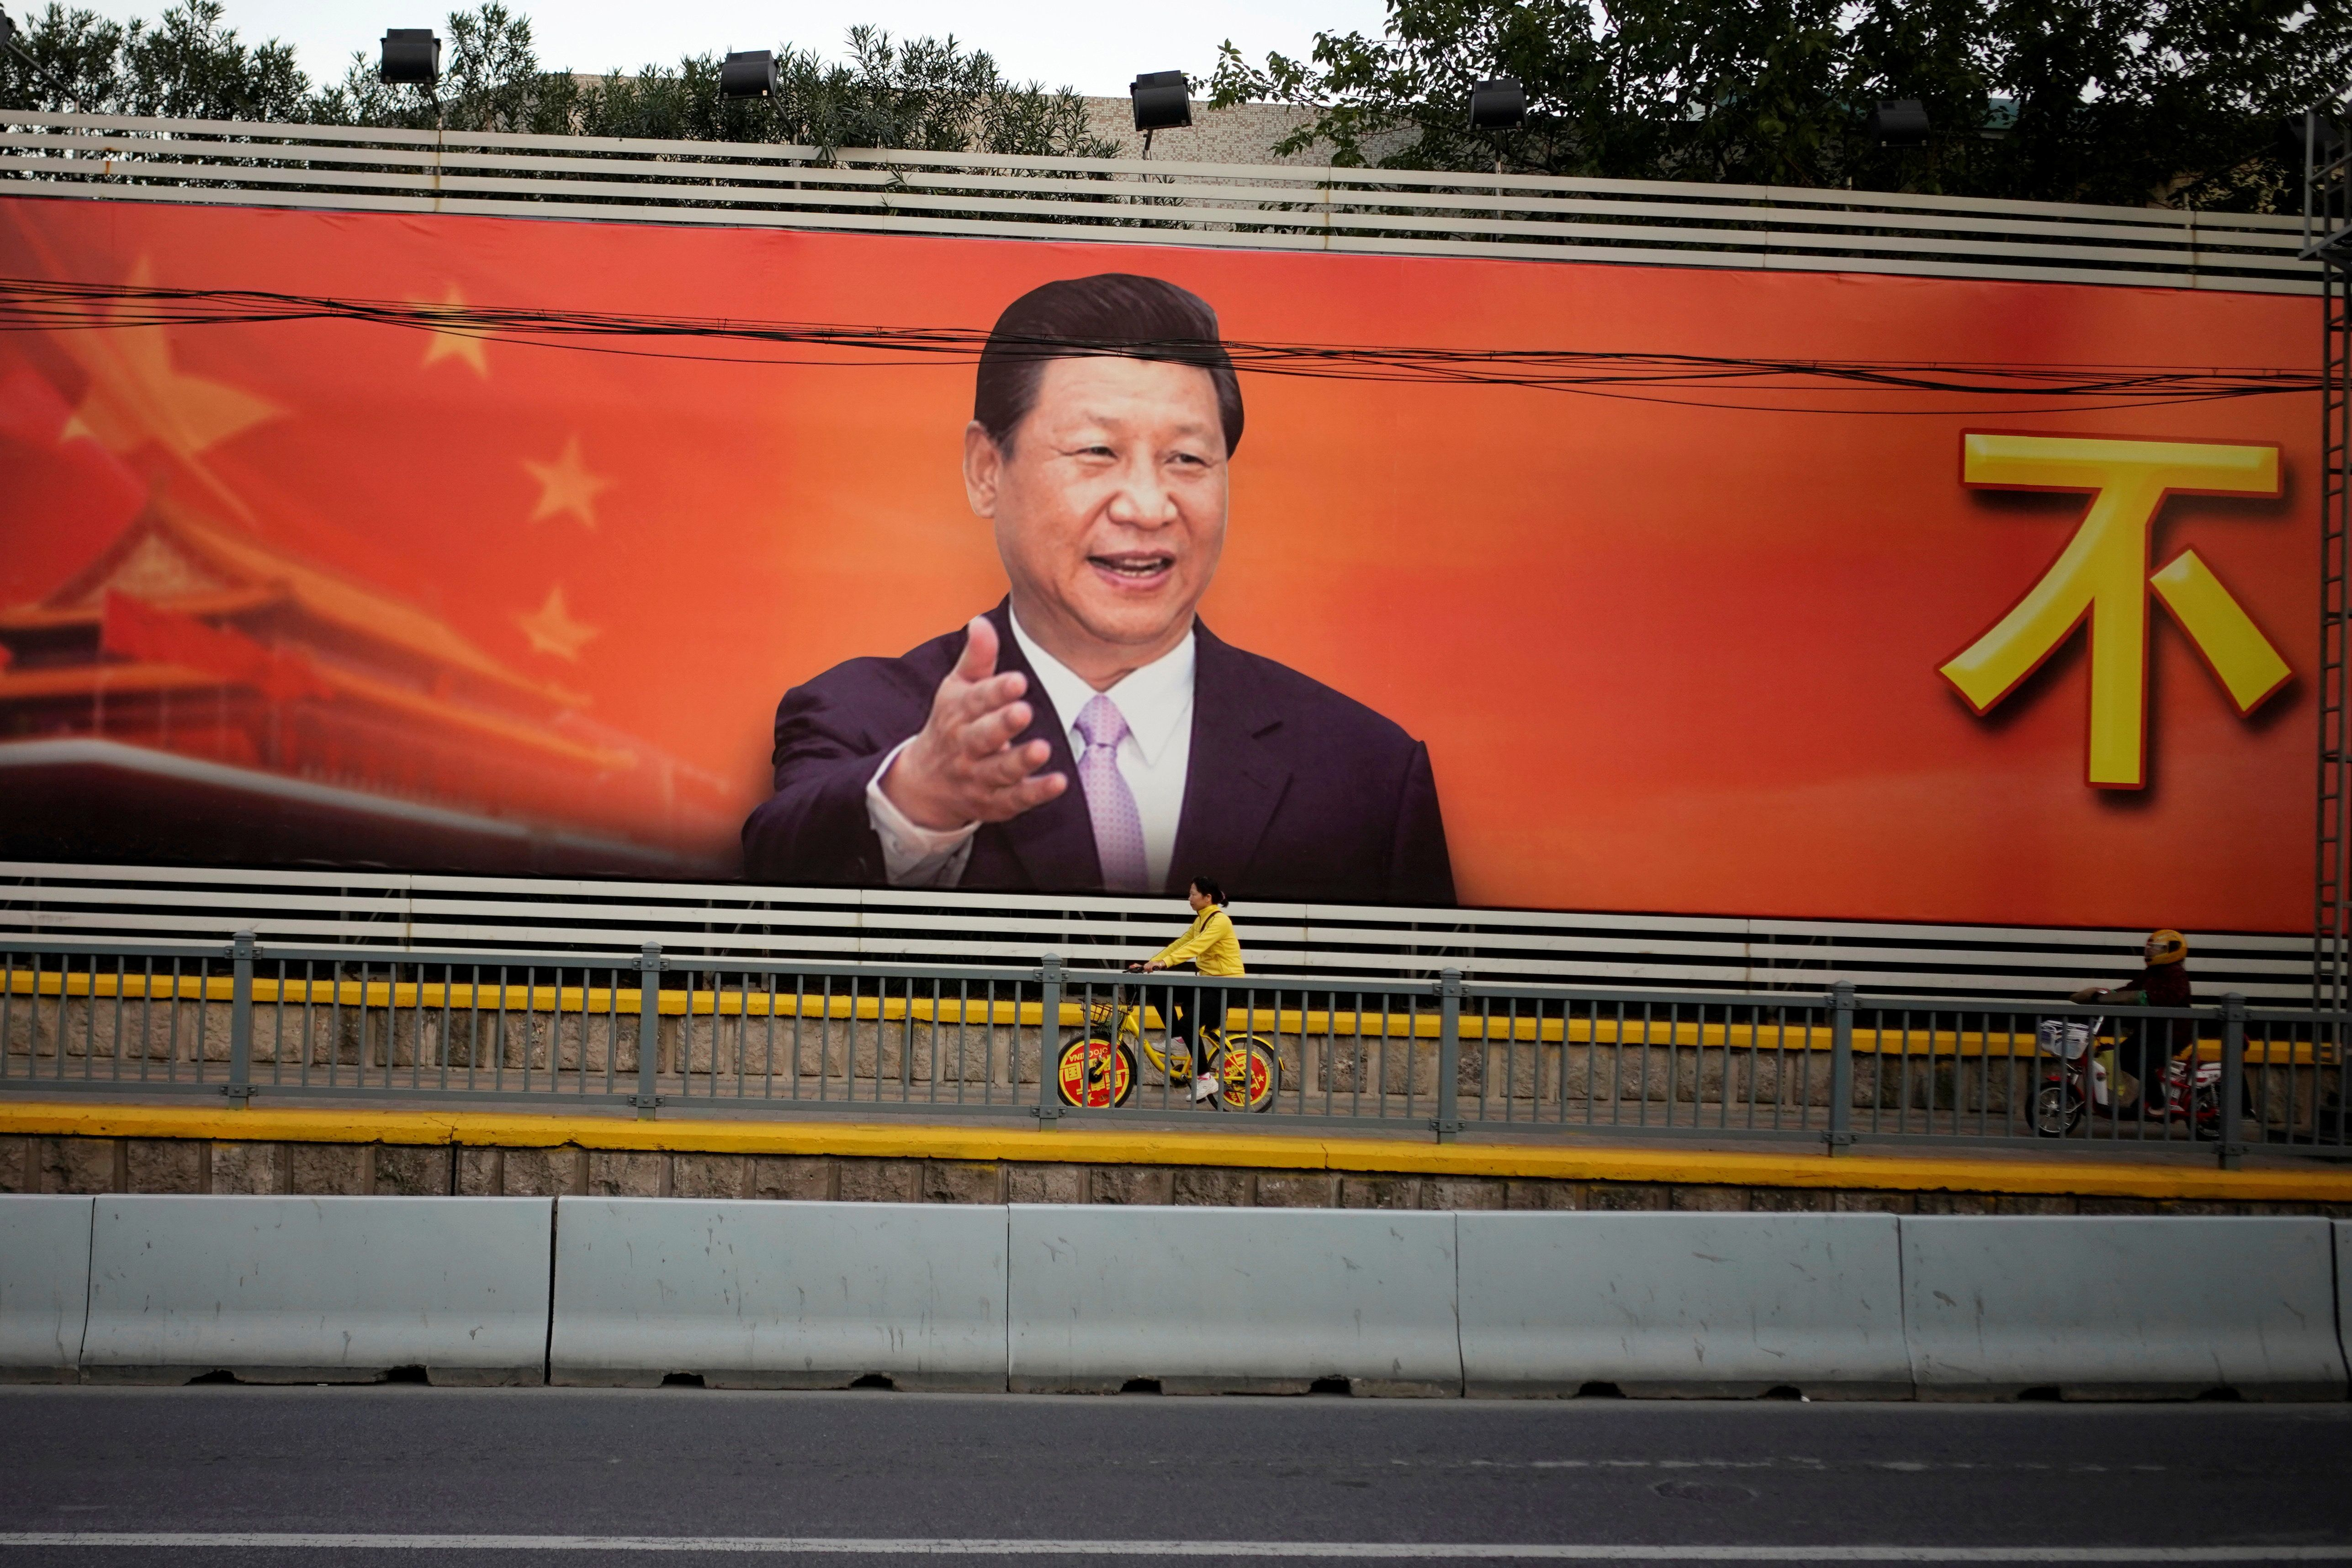 A poster with a portrait of Chinese President Xi Jinping is displayed along a street in Shanghai, China, October 24, 2017. REUTERS/Aly Song